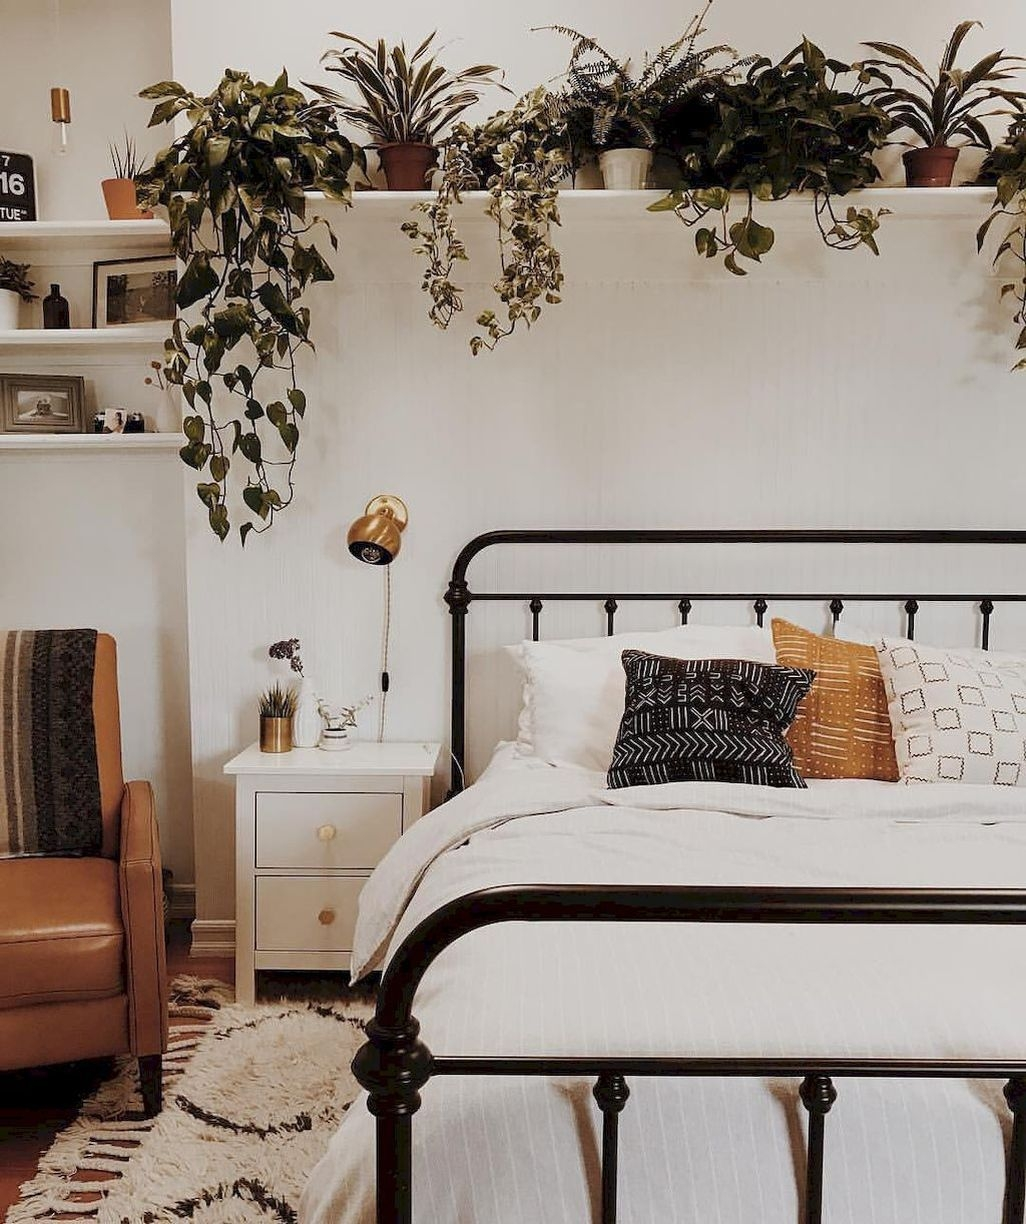 Best 49 Affordable First Apartment Decorating Ideas On A Budget This Month